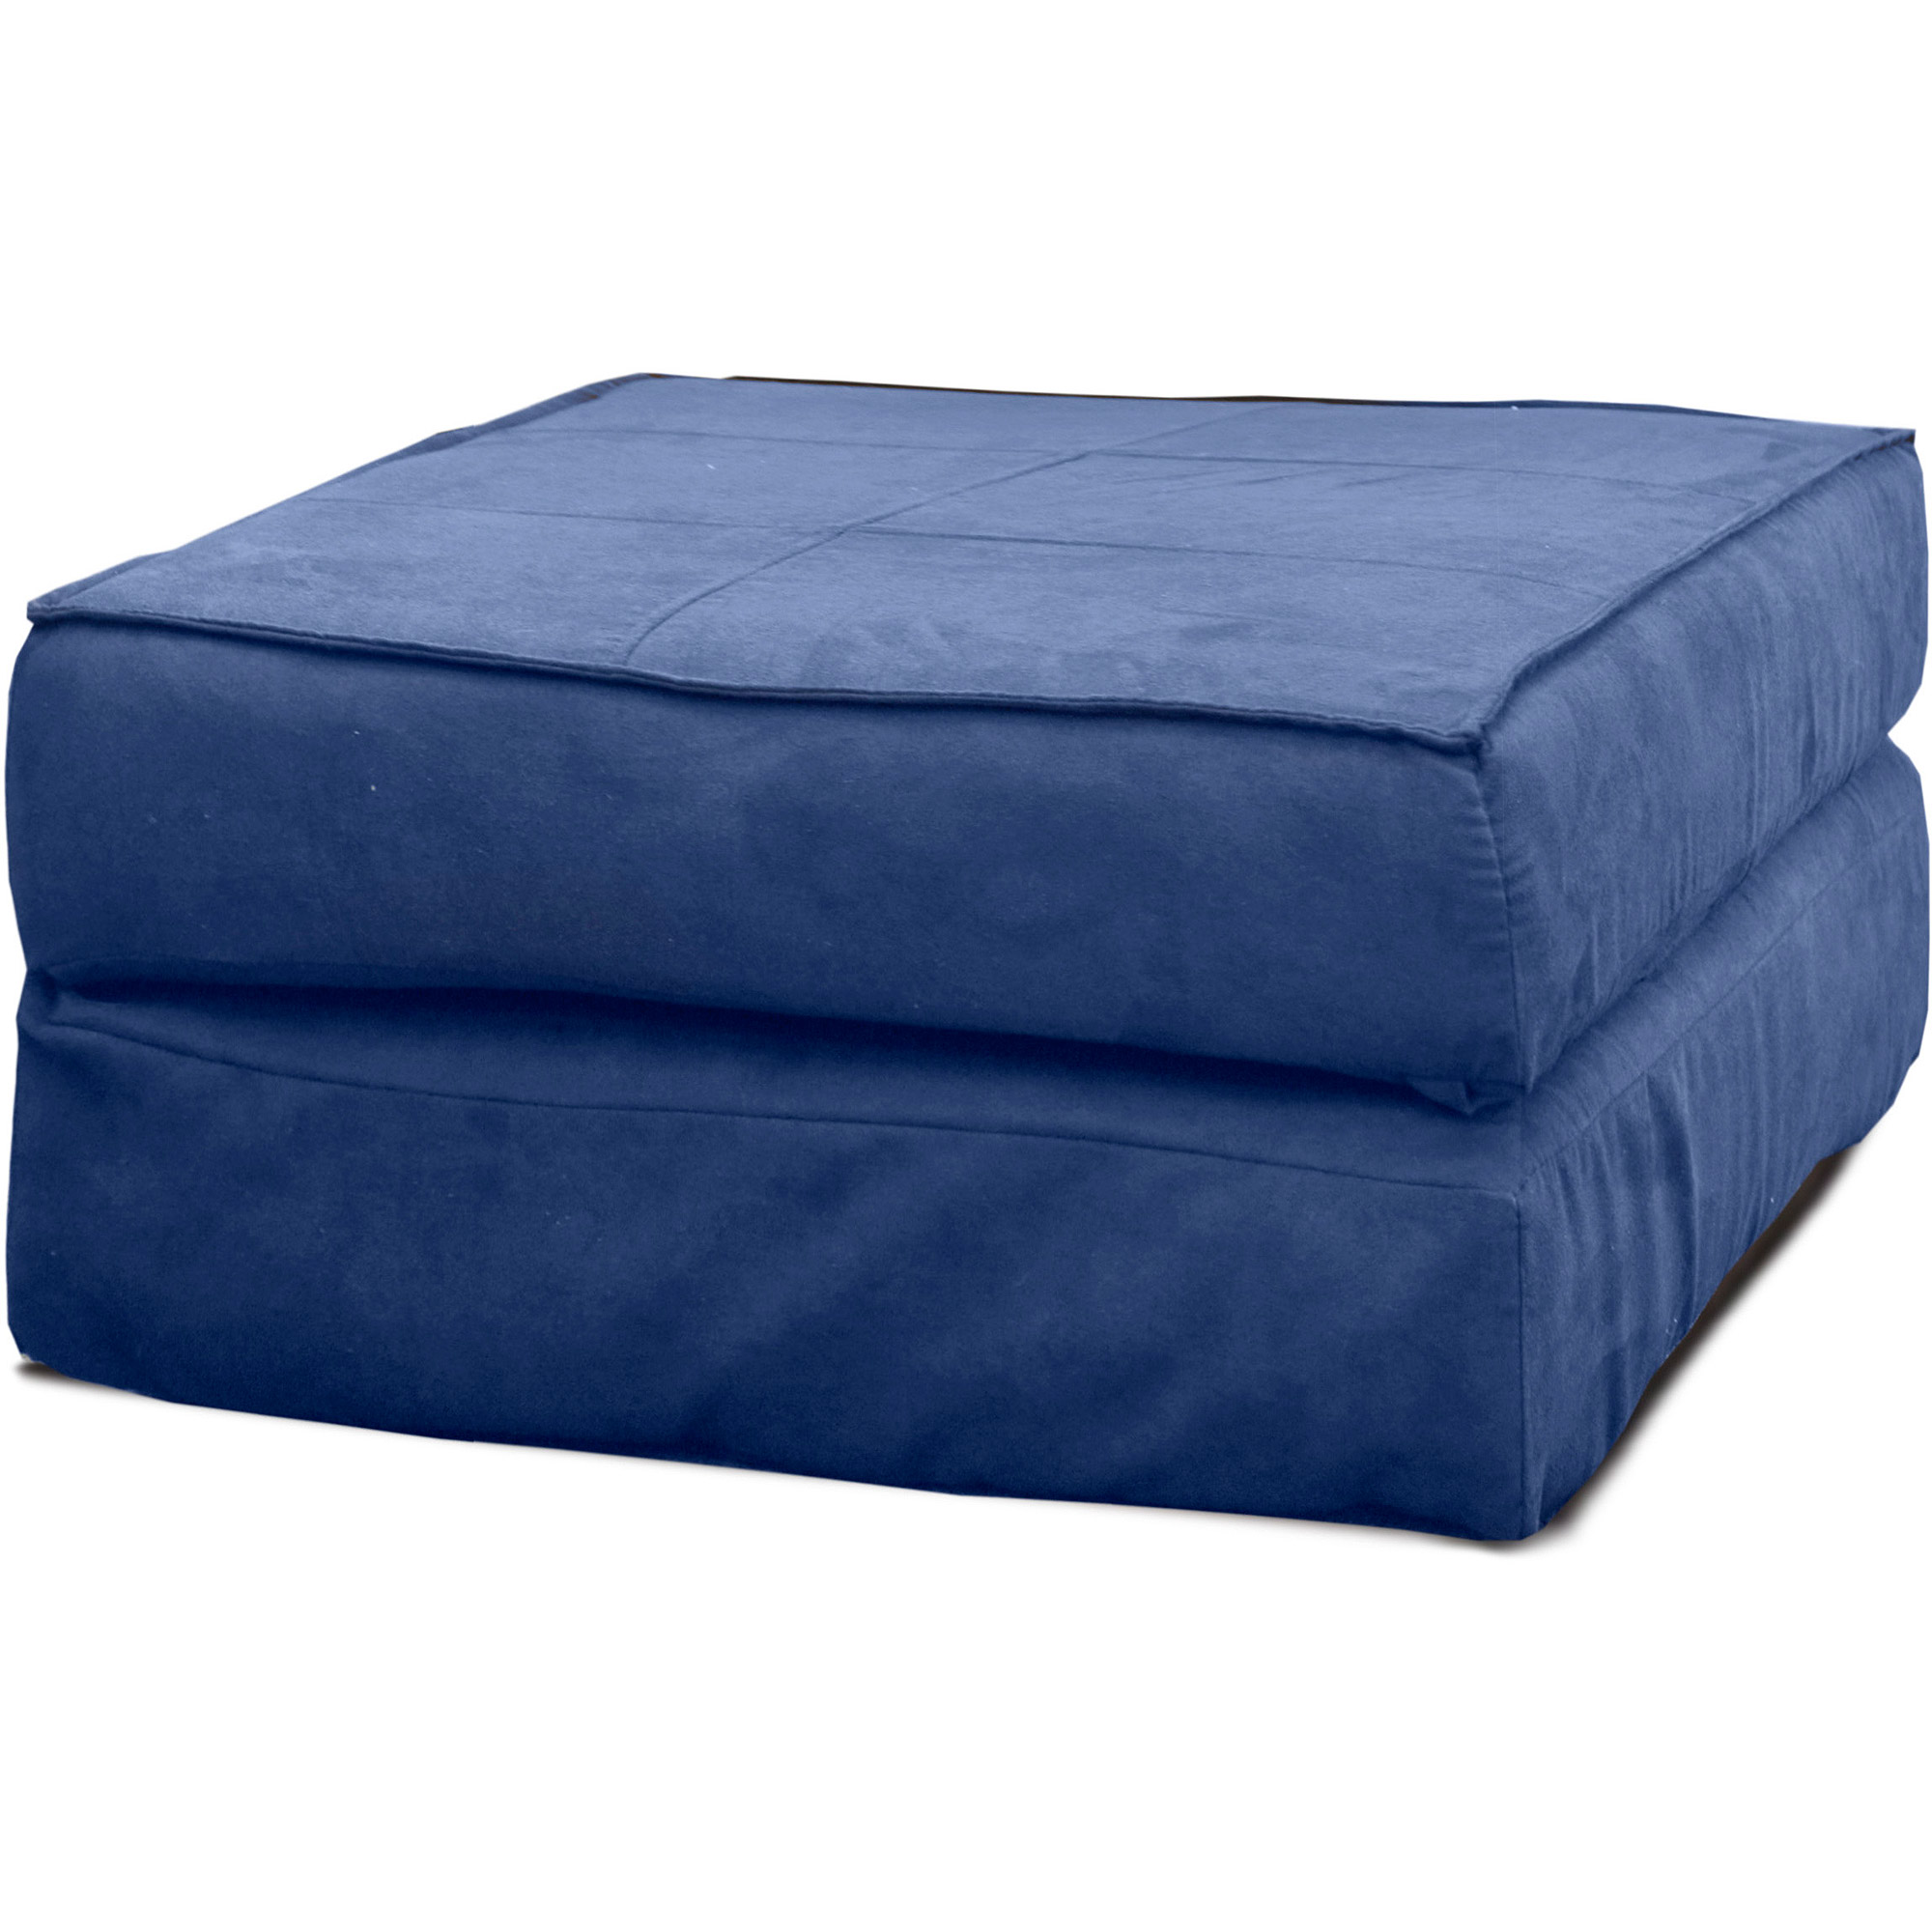 Your Zone Flip Ottoman, Available in Multiple Colors